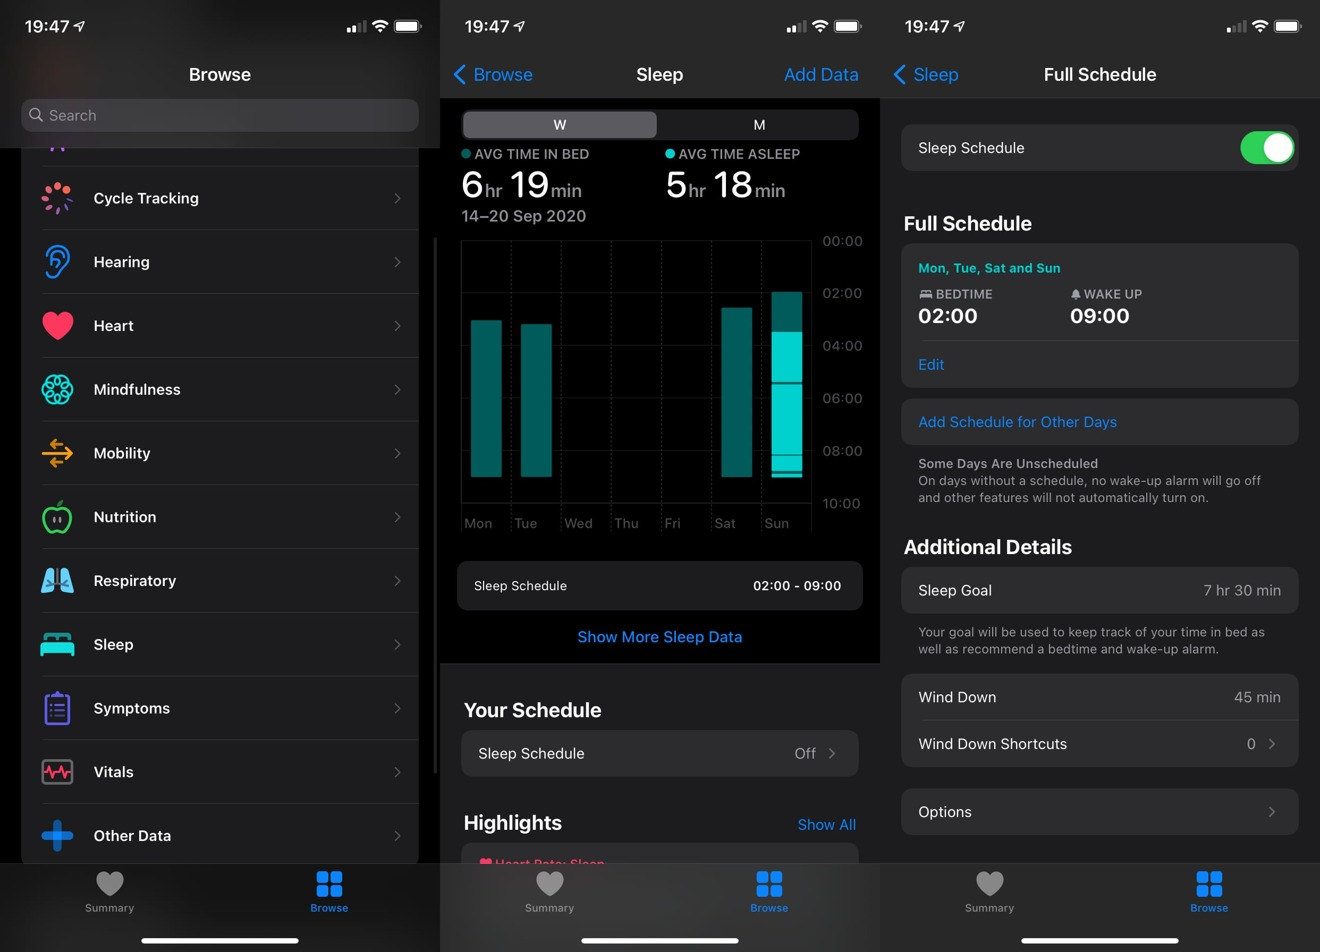 It is relatively simple to enable the Sleep Schedule in the Health app in iOS 14